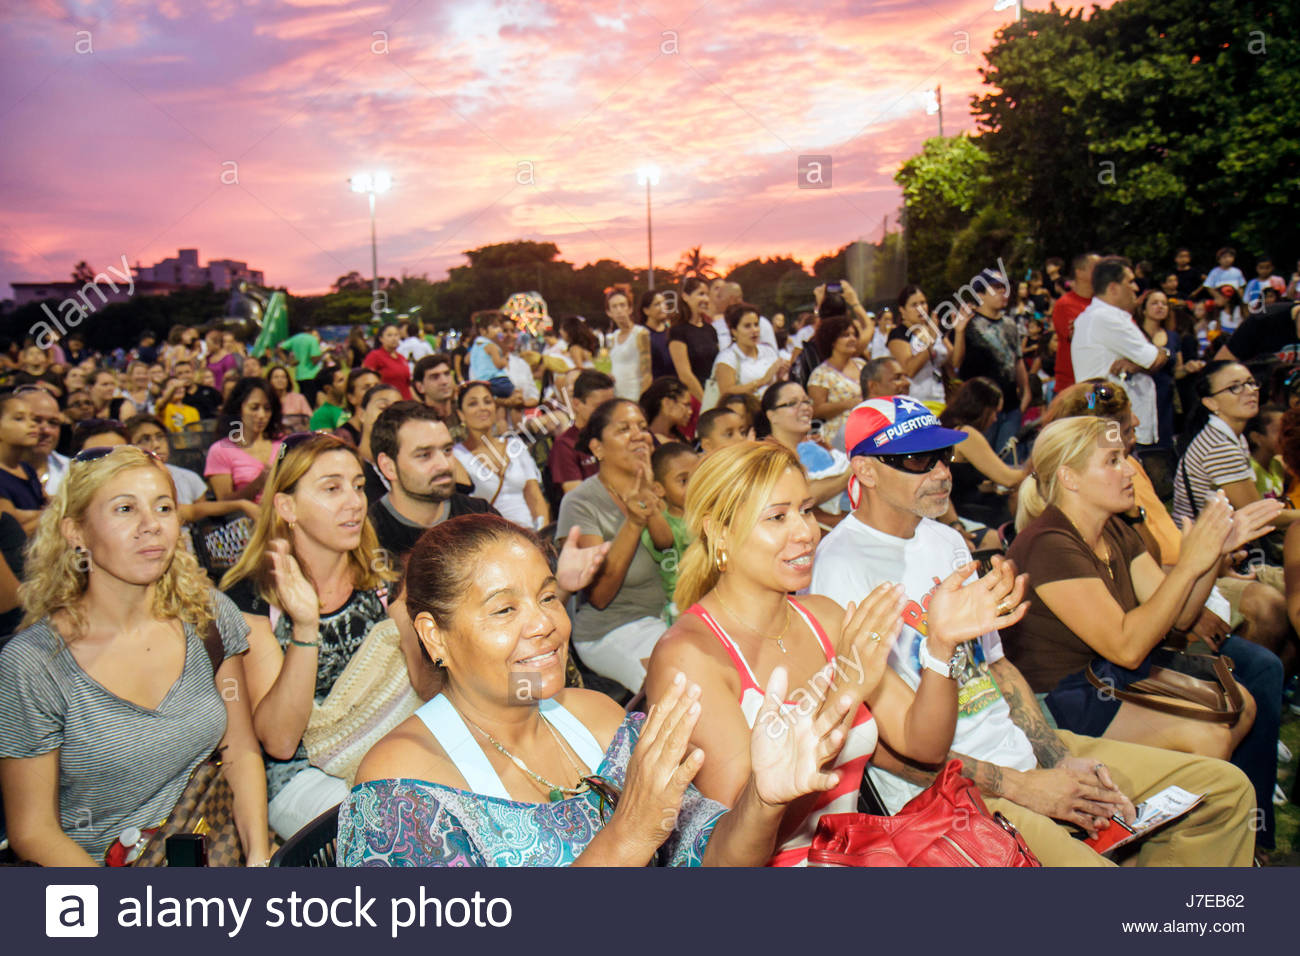 Miami Beach Florida North Northshore Park Hispanic Heritage Festival Audience Watching Performance Woman Man Families Suns